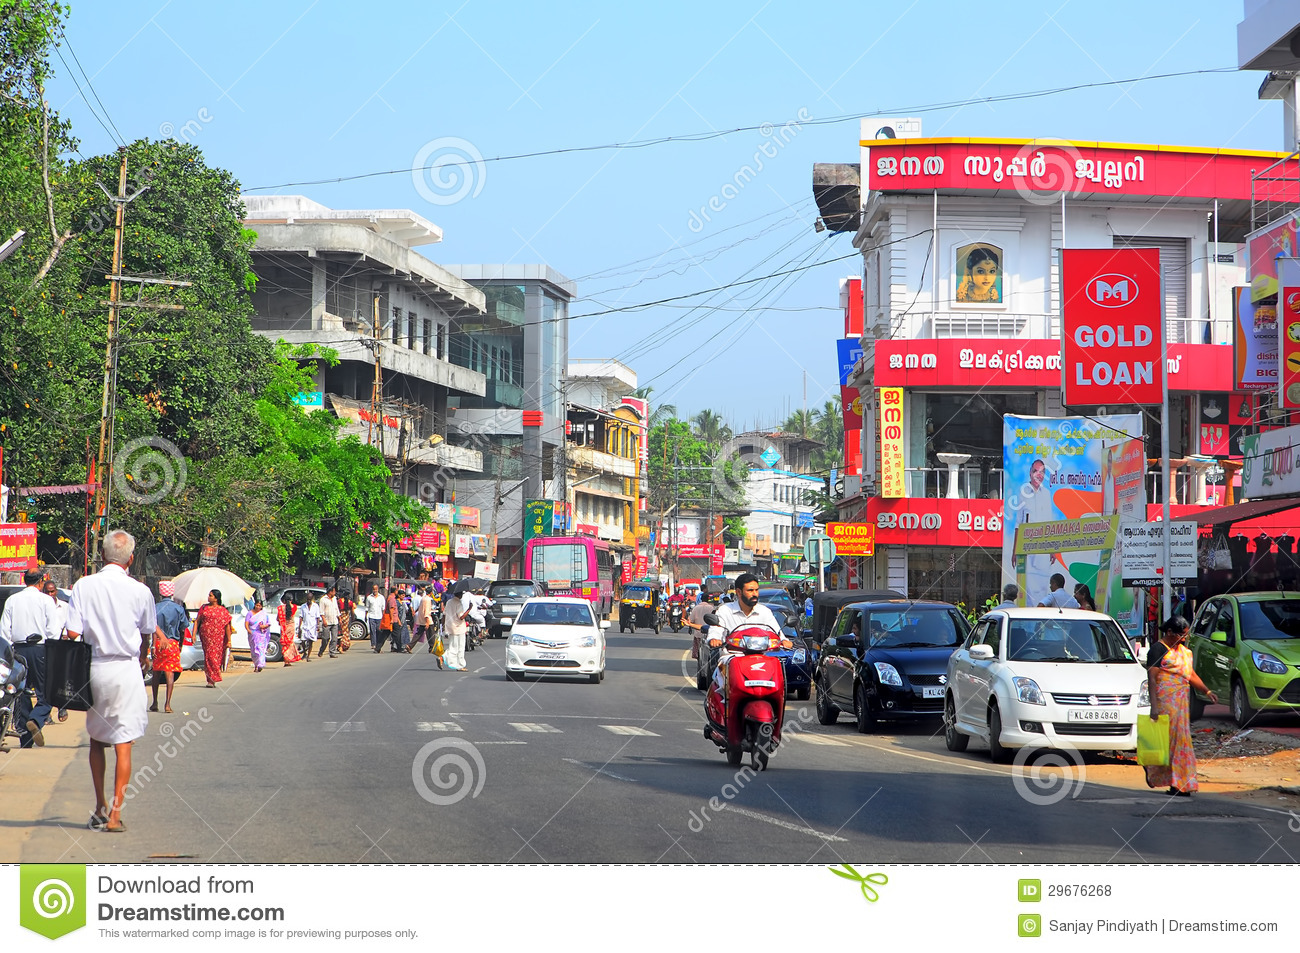 Downtown kerala : vadakkencherry, a small town in palakkad district of ...